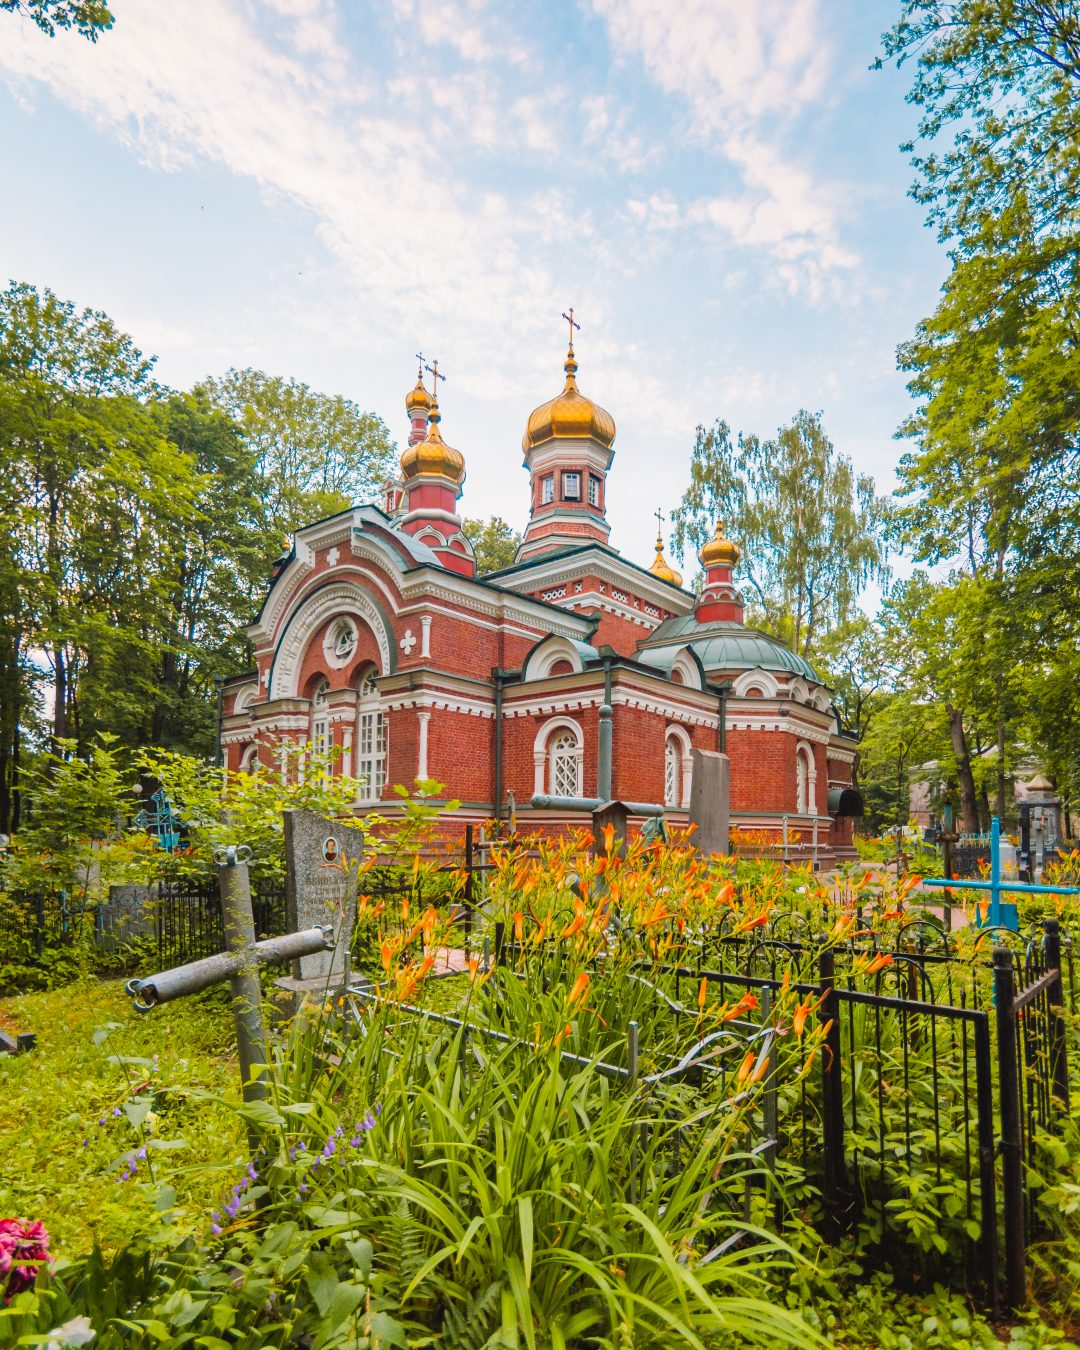 One of my favourite places in Minsk was definitely the Alexander Nevsky church, a beautiful Orthodox church in the centre of Minsk